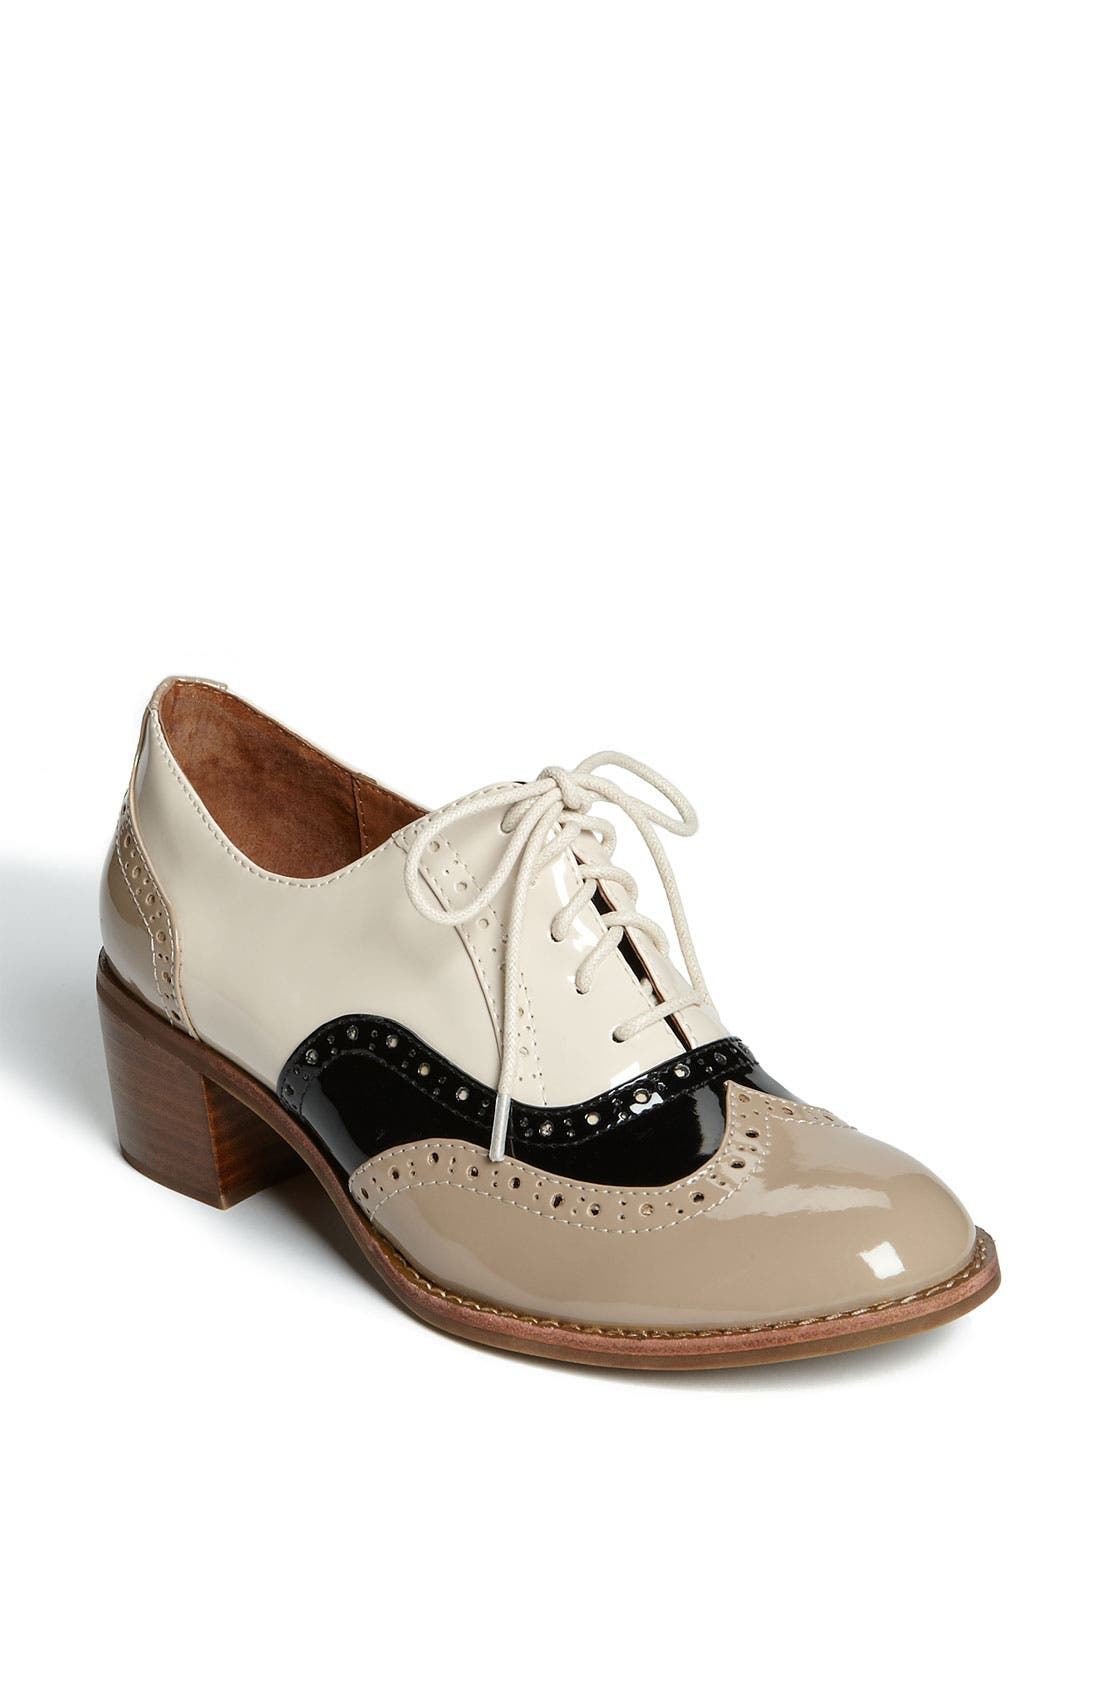 Alternate Image 1 Selected - Jeffrey Campbell 'Williams' Oxford